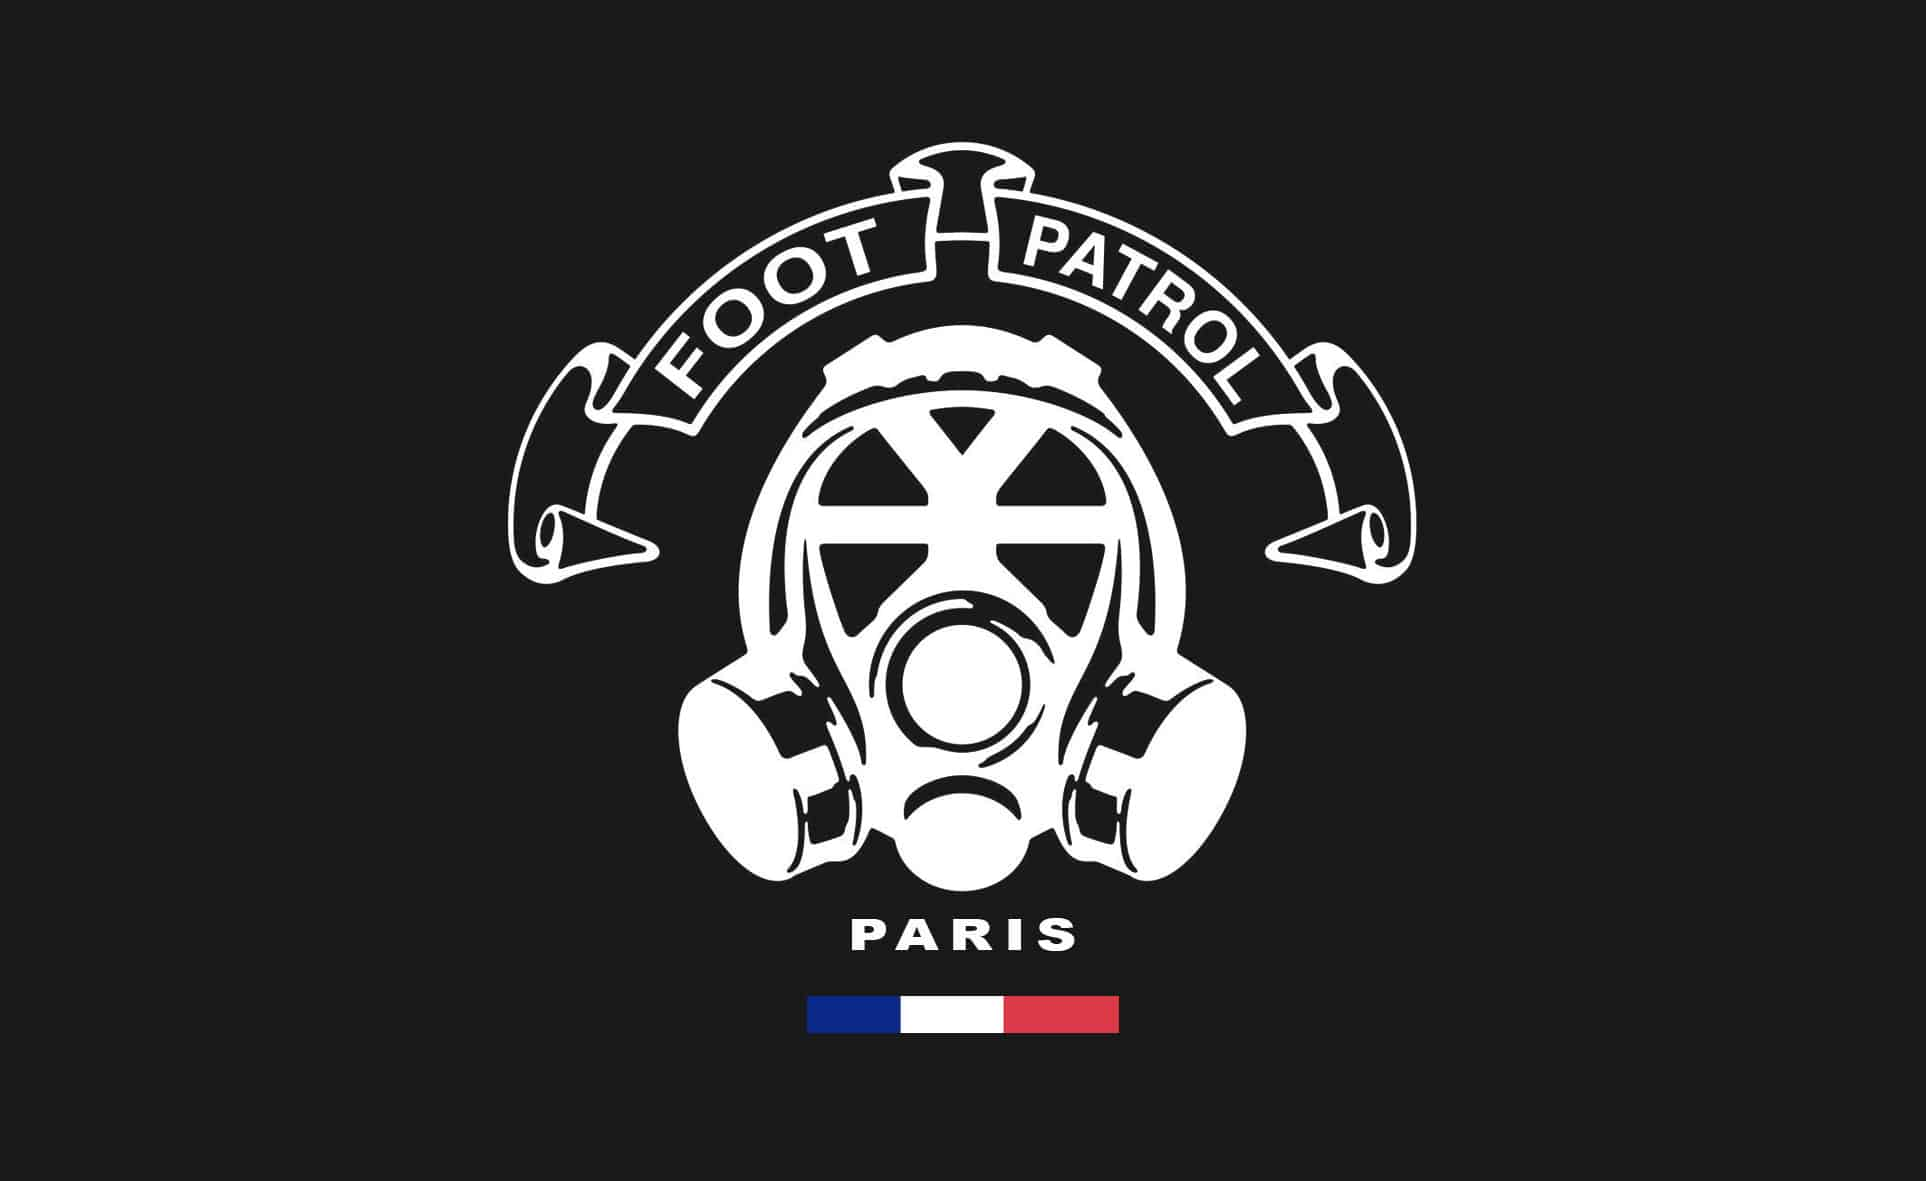 Footpatrol Paris